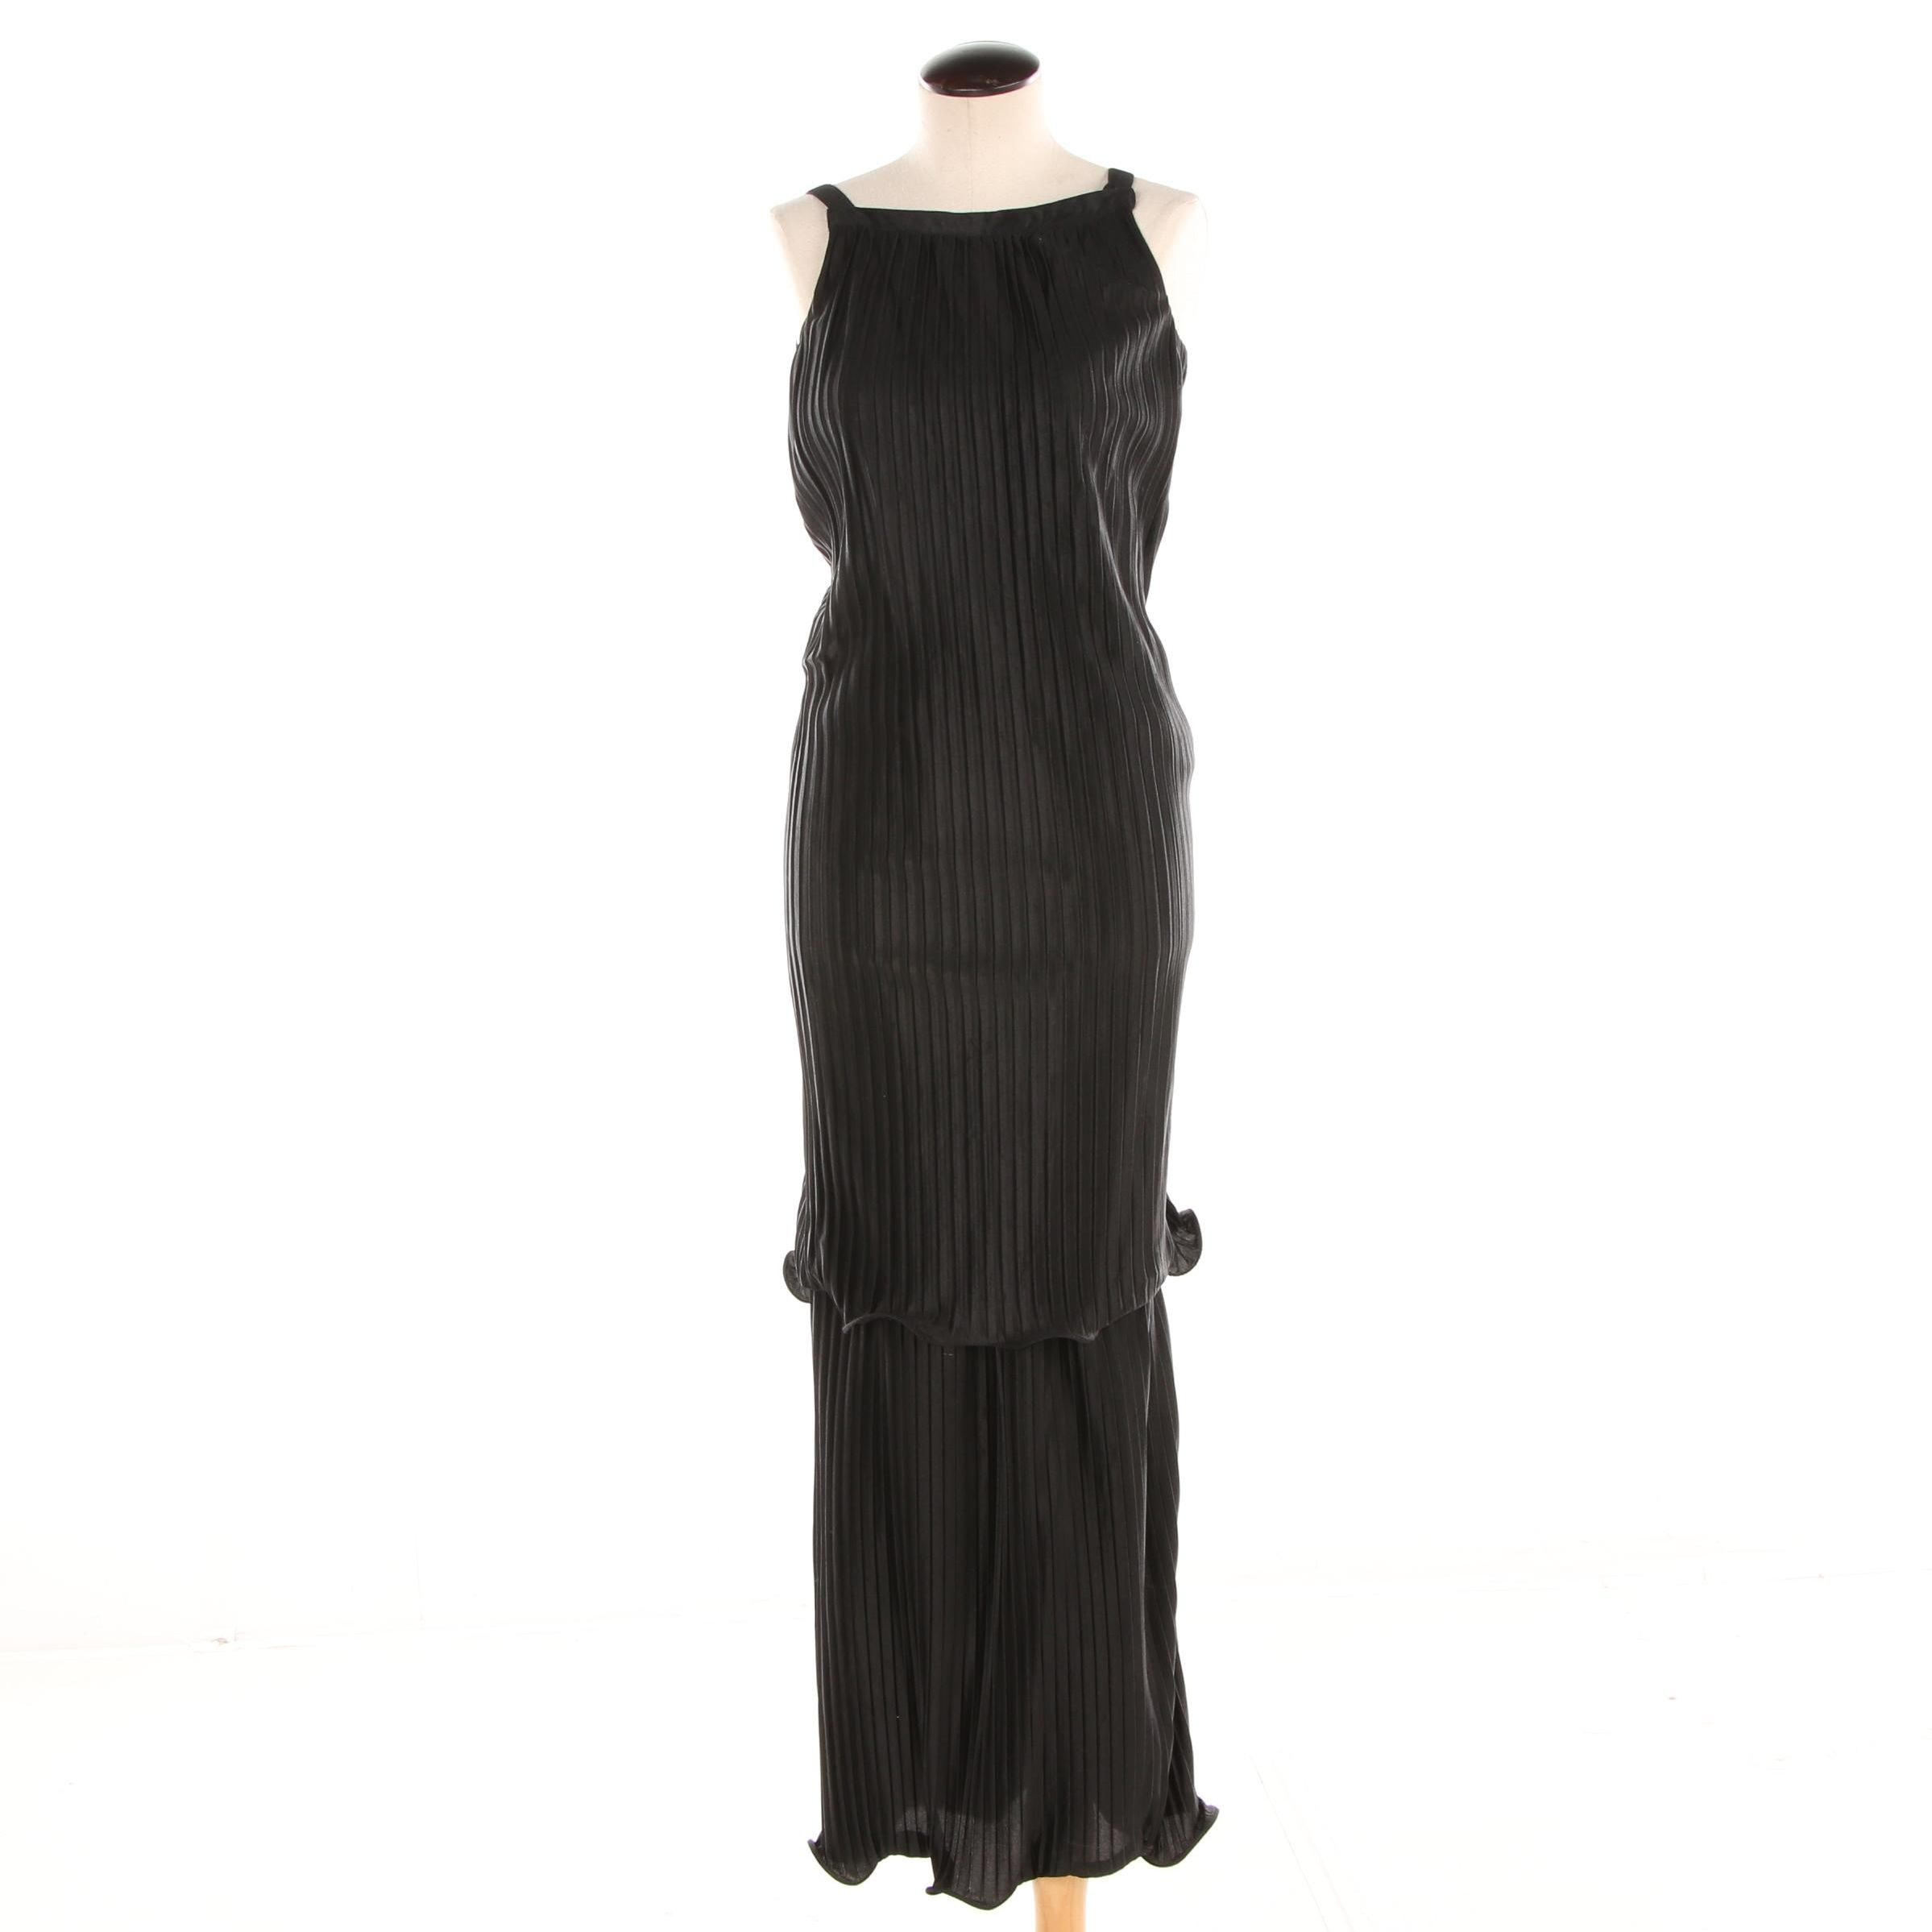 Circa 1970s Courréges Paris Black Plisse Overlay Sleeveless Maxi Dress